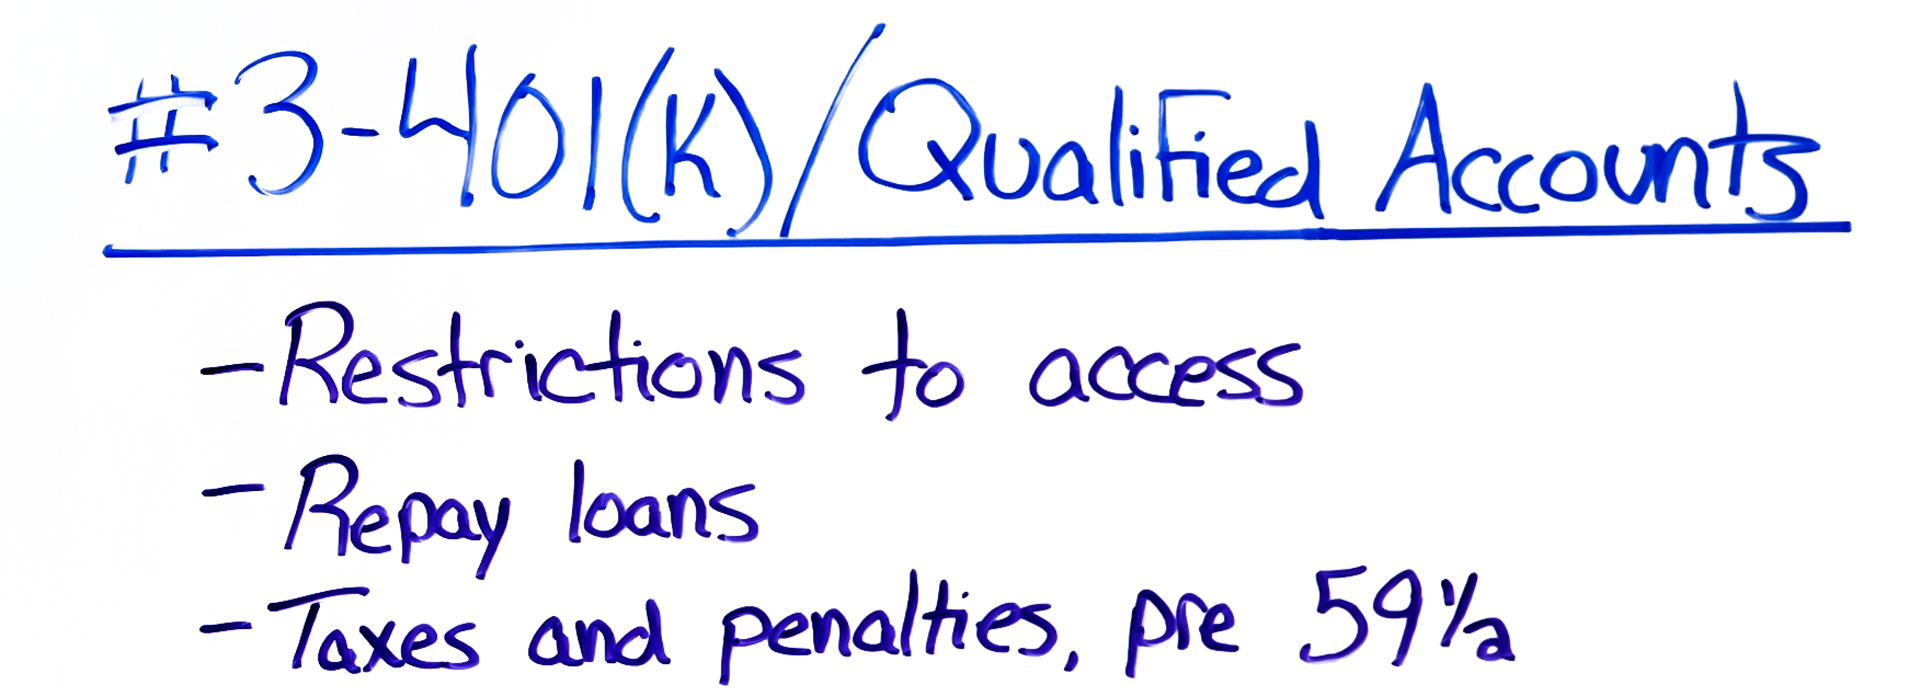 401(K)/Qualified Accounts